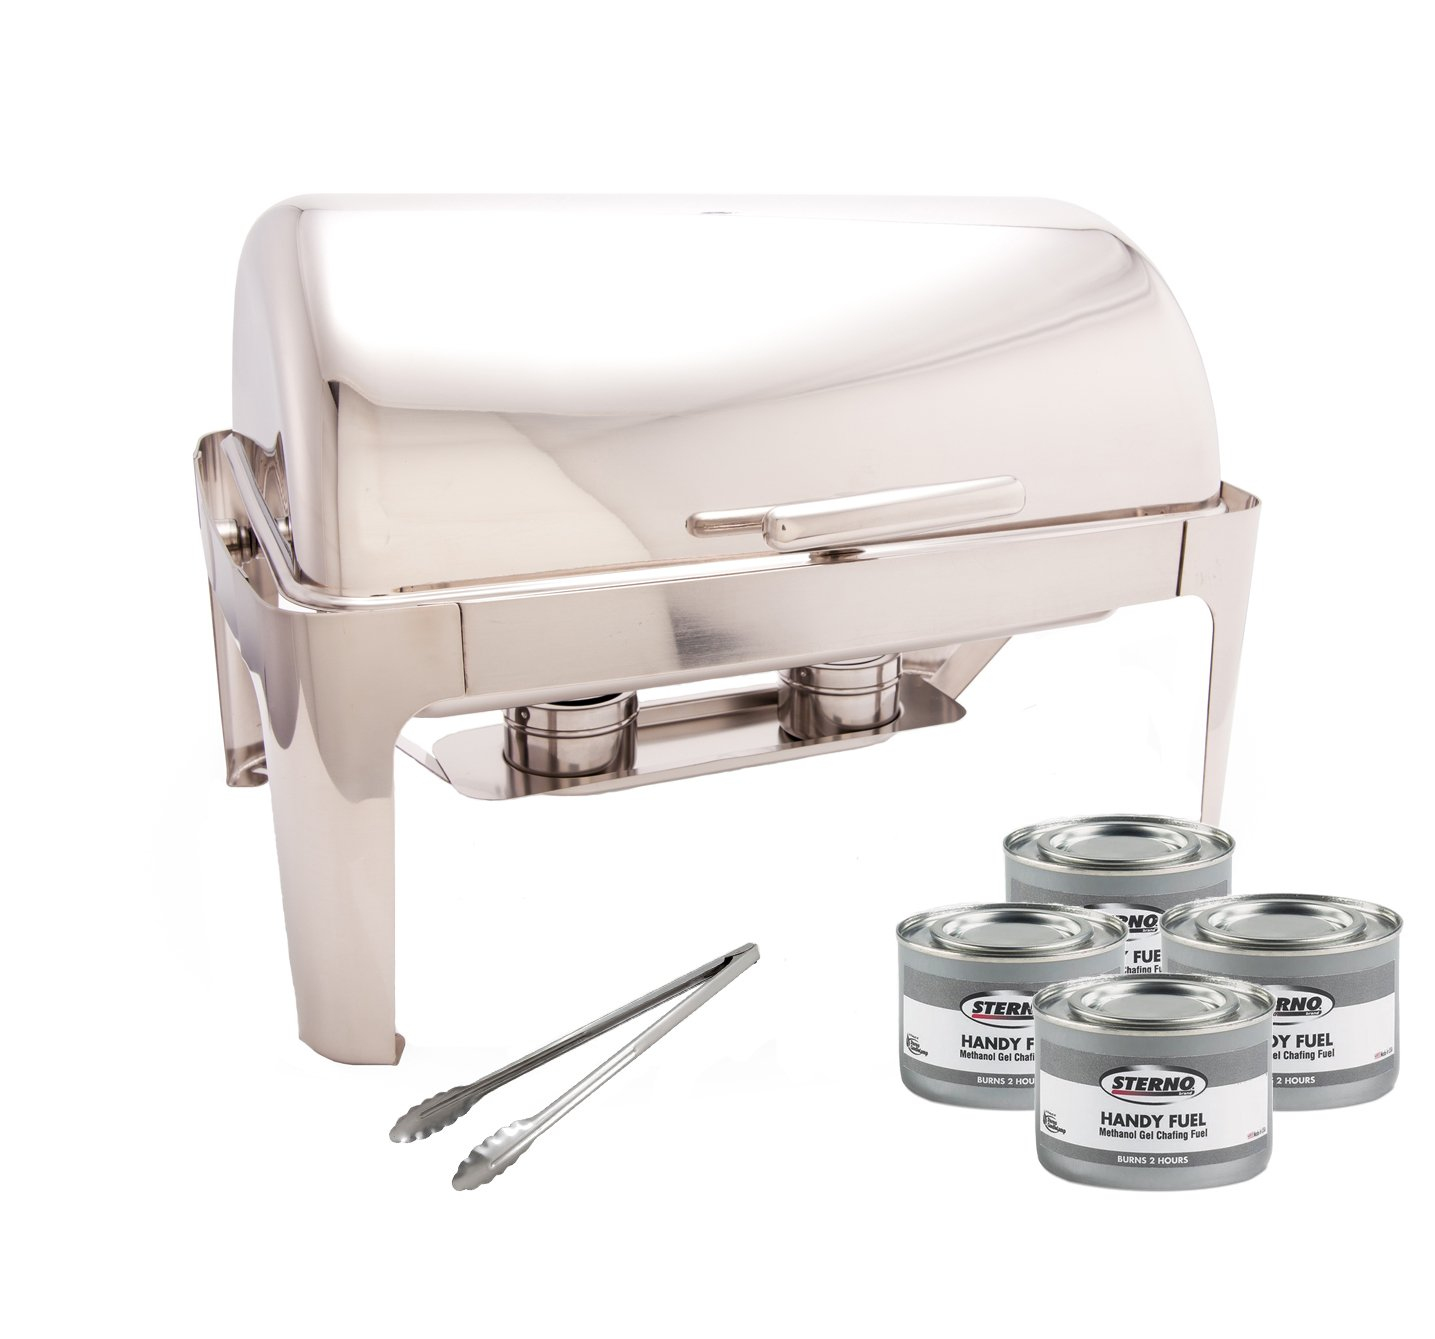 PrestoWare PWR 1RE Full Size Roll Top Chafer Stainless Steel 8 Quart Chafing Dish Set With 2 Methanol Gel Fuel And 16 Inch